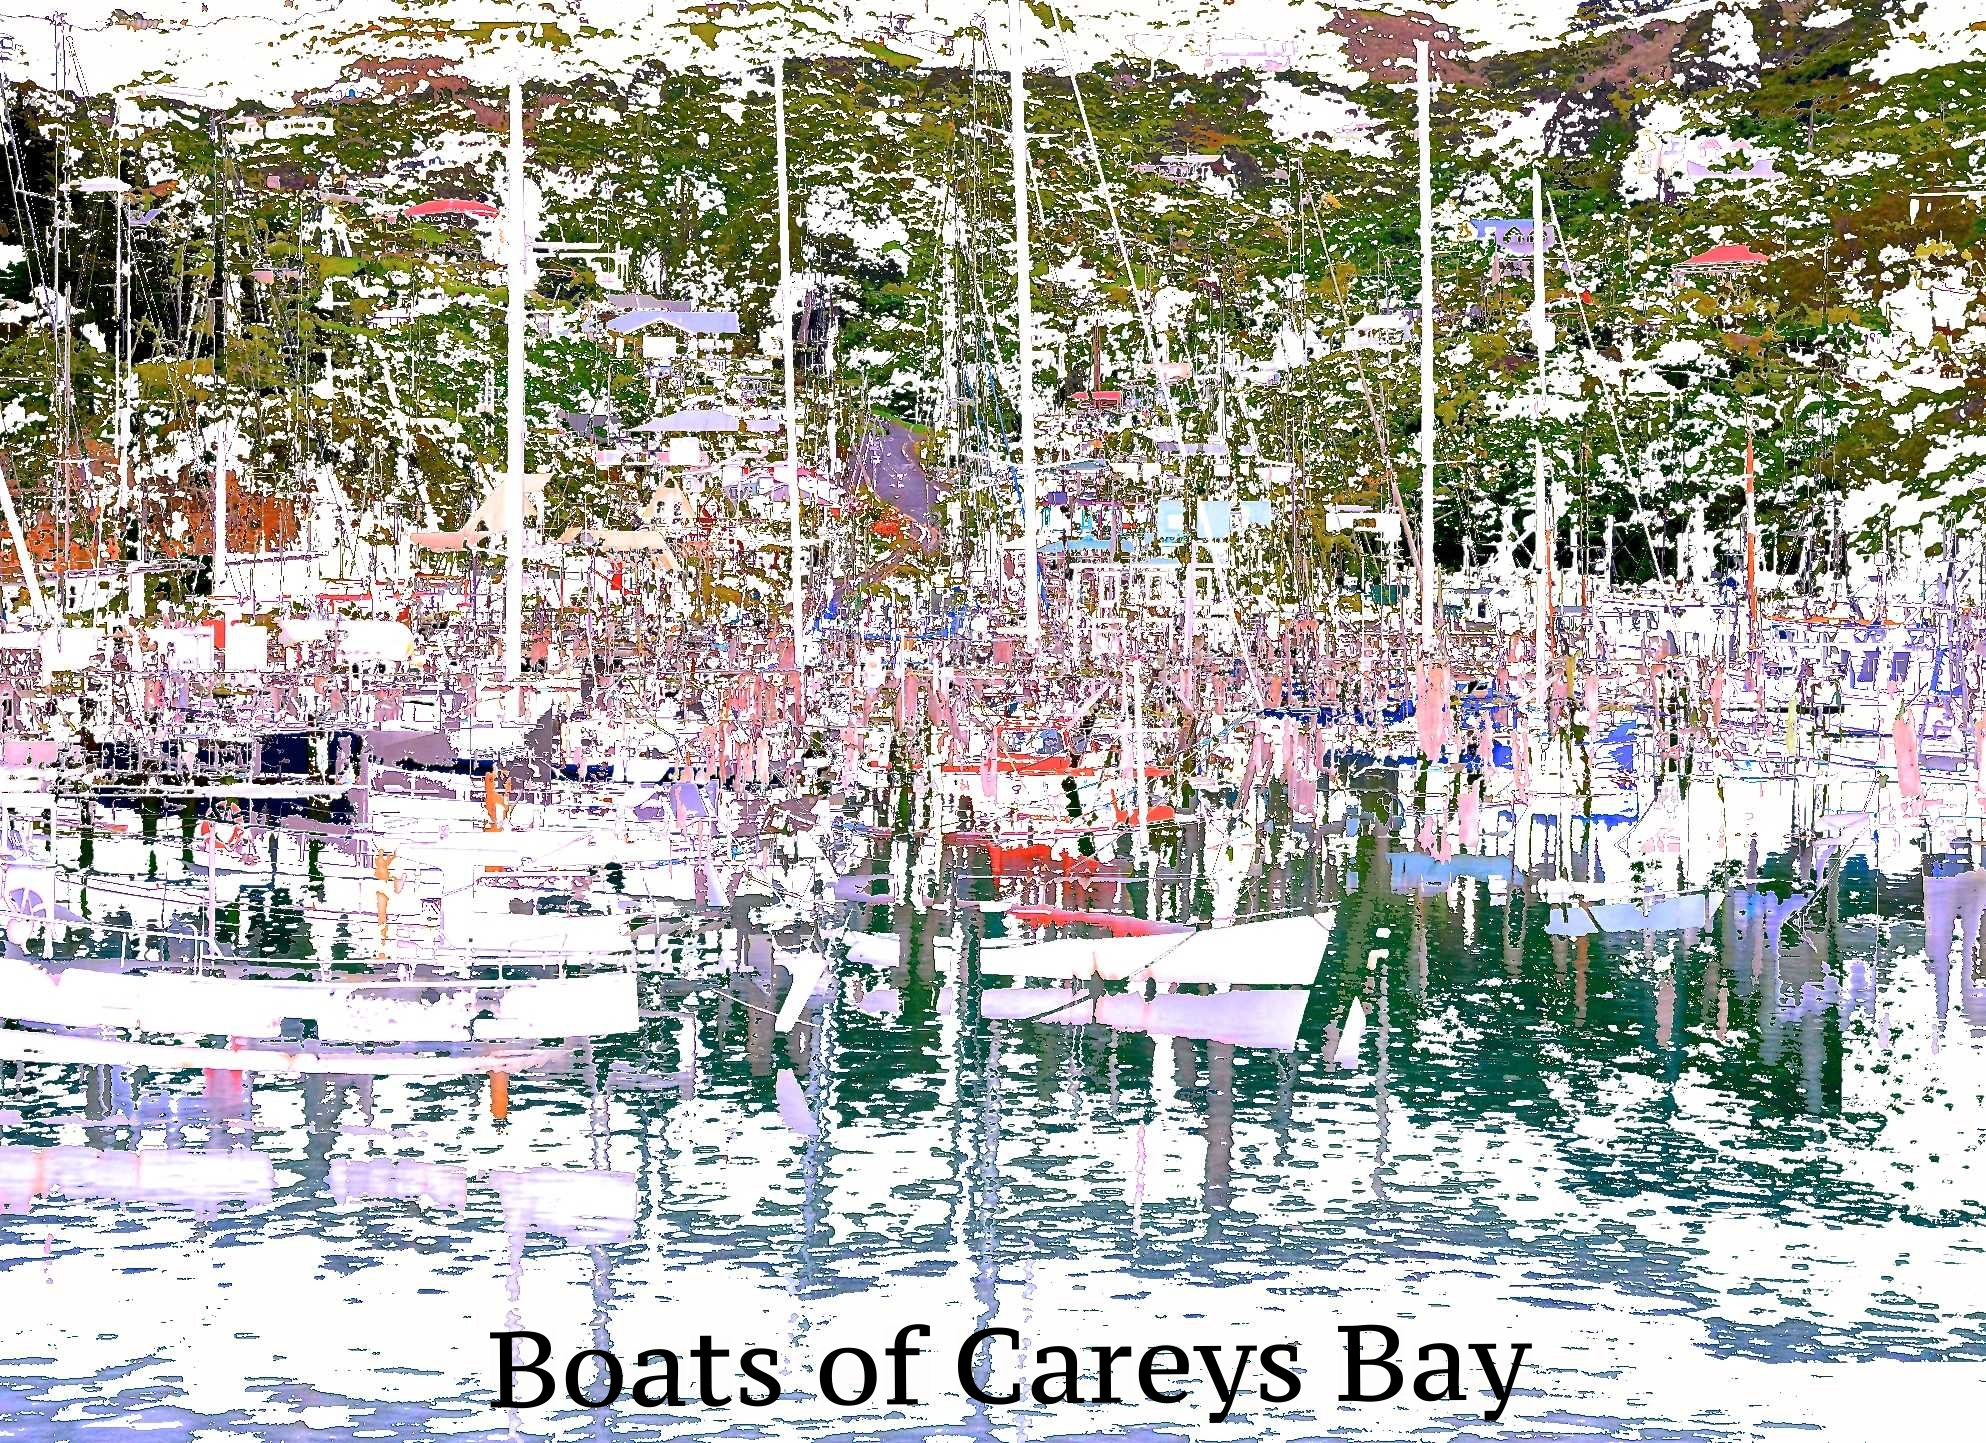 Boats of Careys Bay